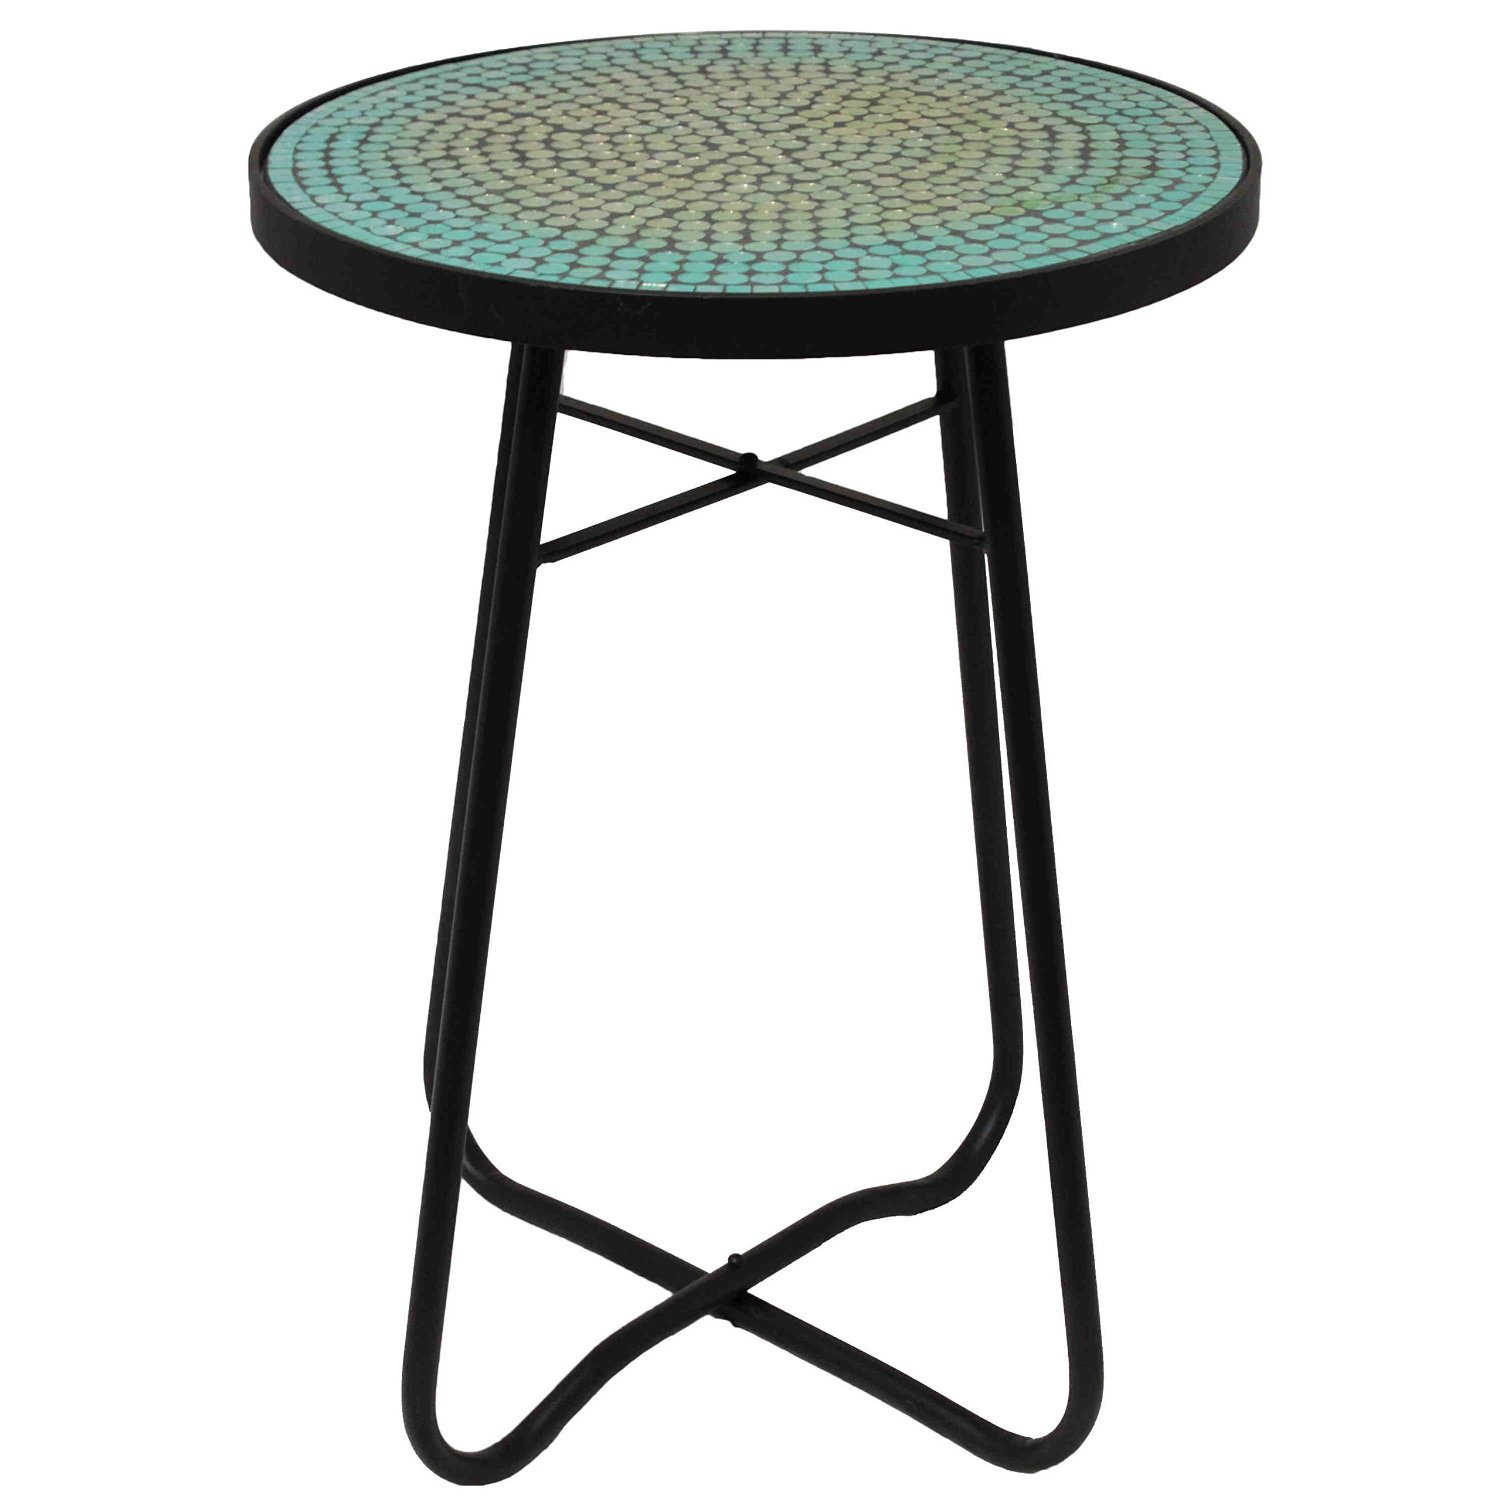 round black accent table find glass tables contemporary get quotations side style crafted farmhouse with bench small slim mirror target entry pendant light fixtures oval wicker